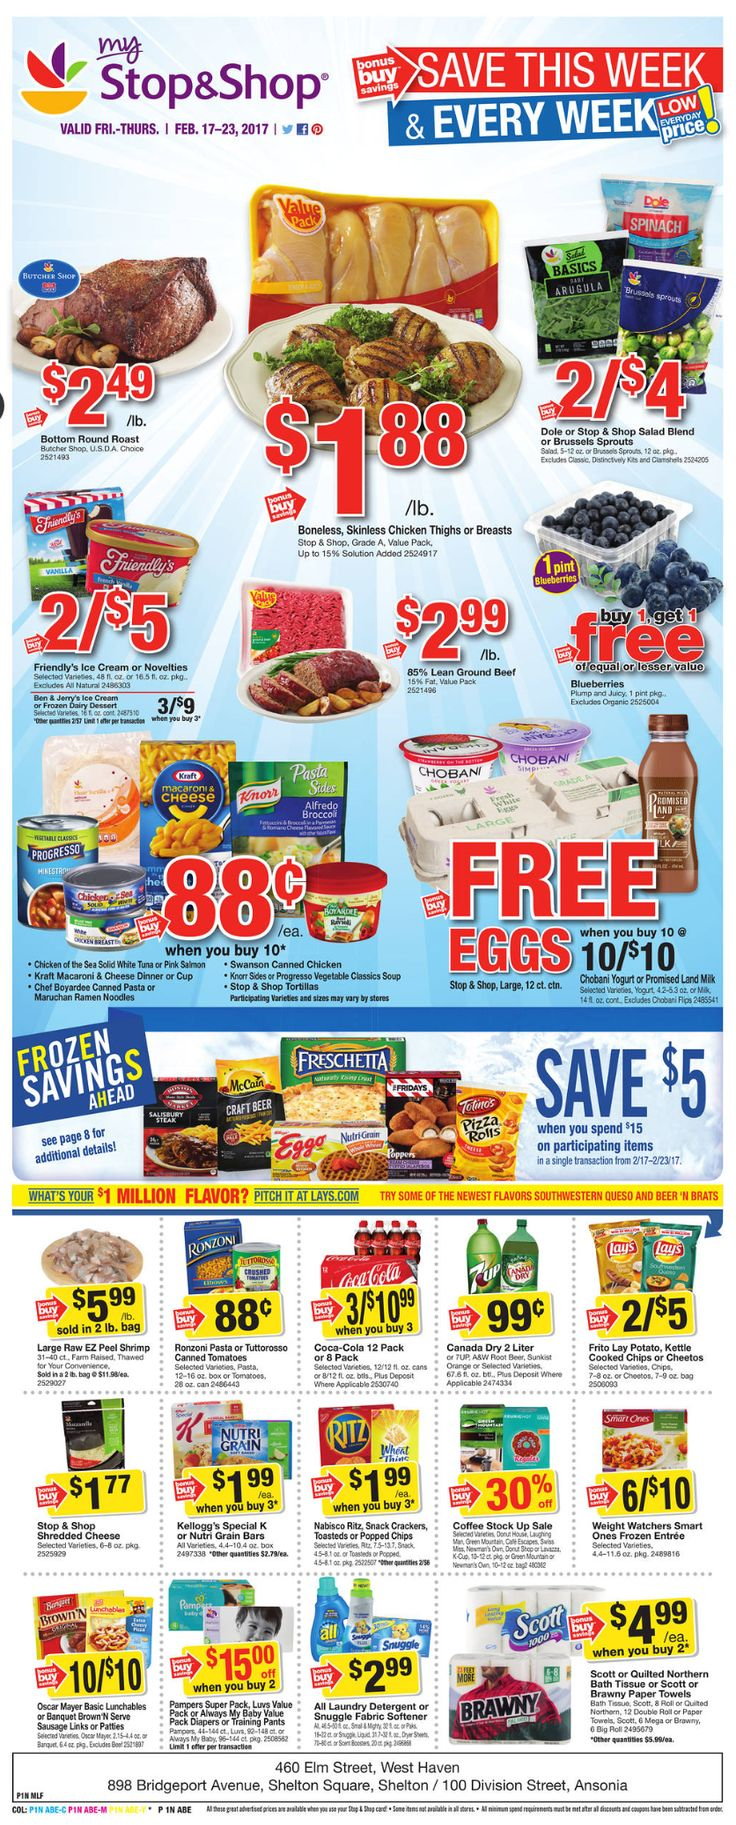 Stop and Shop Circular February 17 - 23, 2017 - http://www.olcatalog.com/grocery/stop-and-shop-circular.html